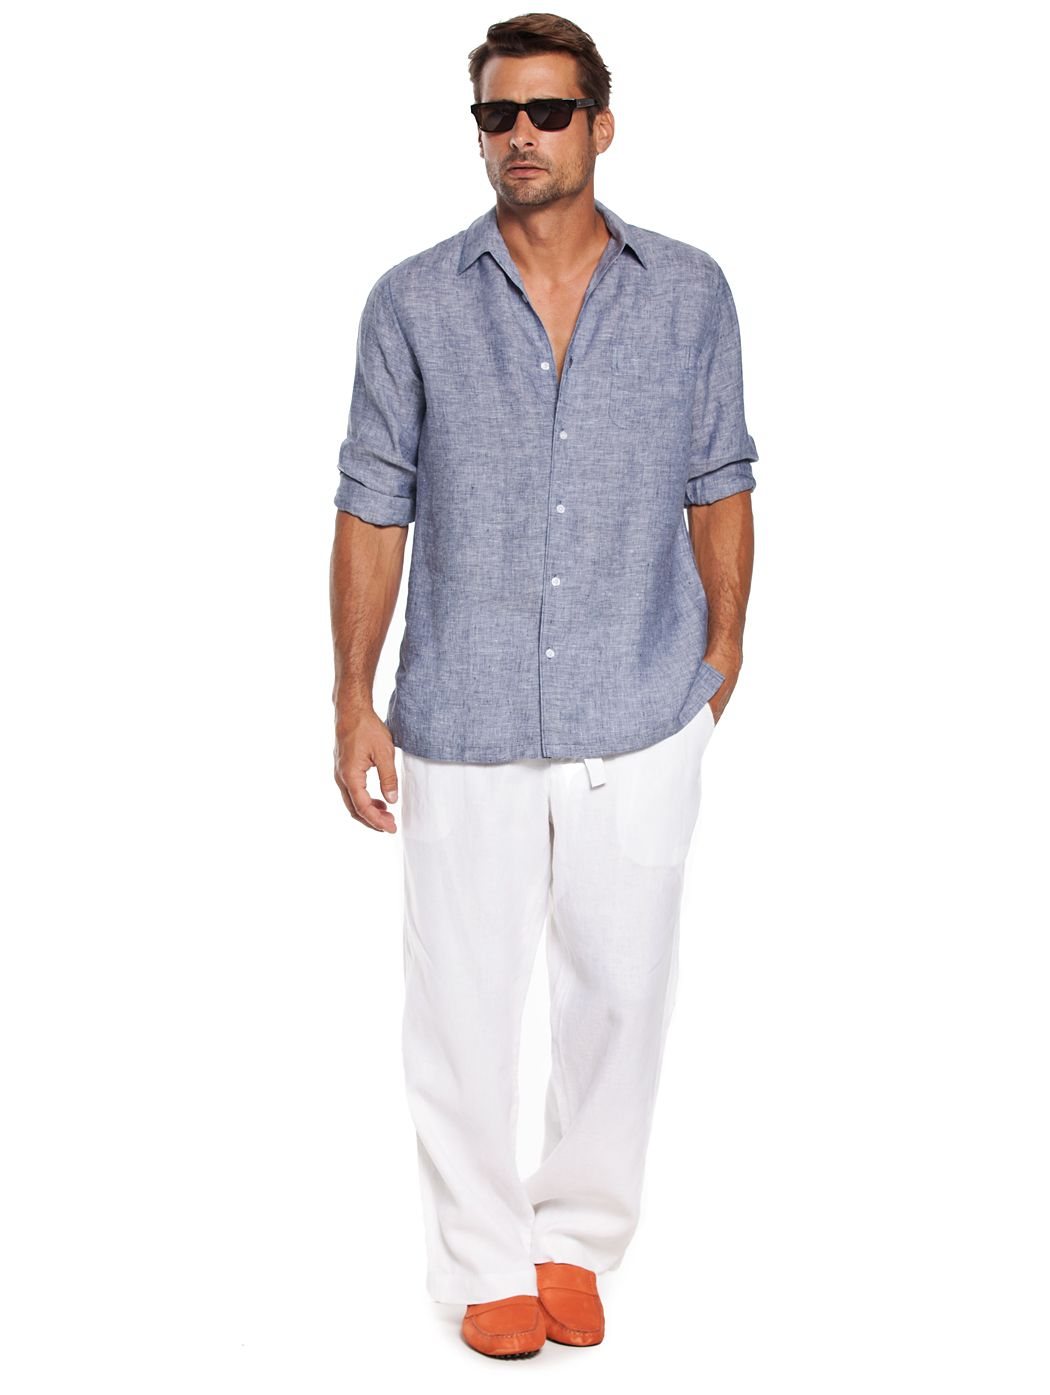 About Men's Sale Men's Linen Clothes on Sale Whether you're looking to expand your casual wardrobe or are looking for something new, the Cubavera Men's .